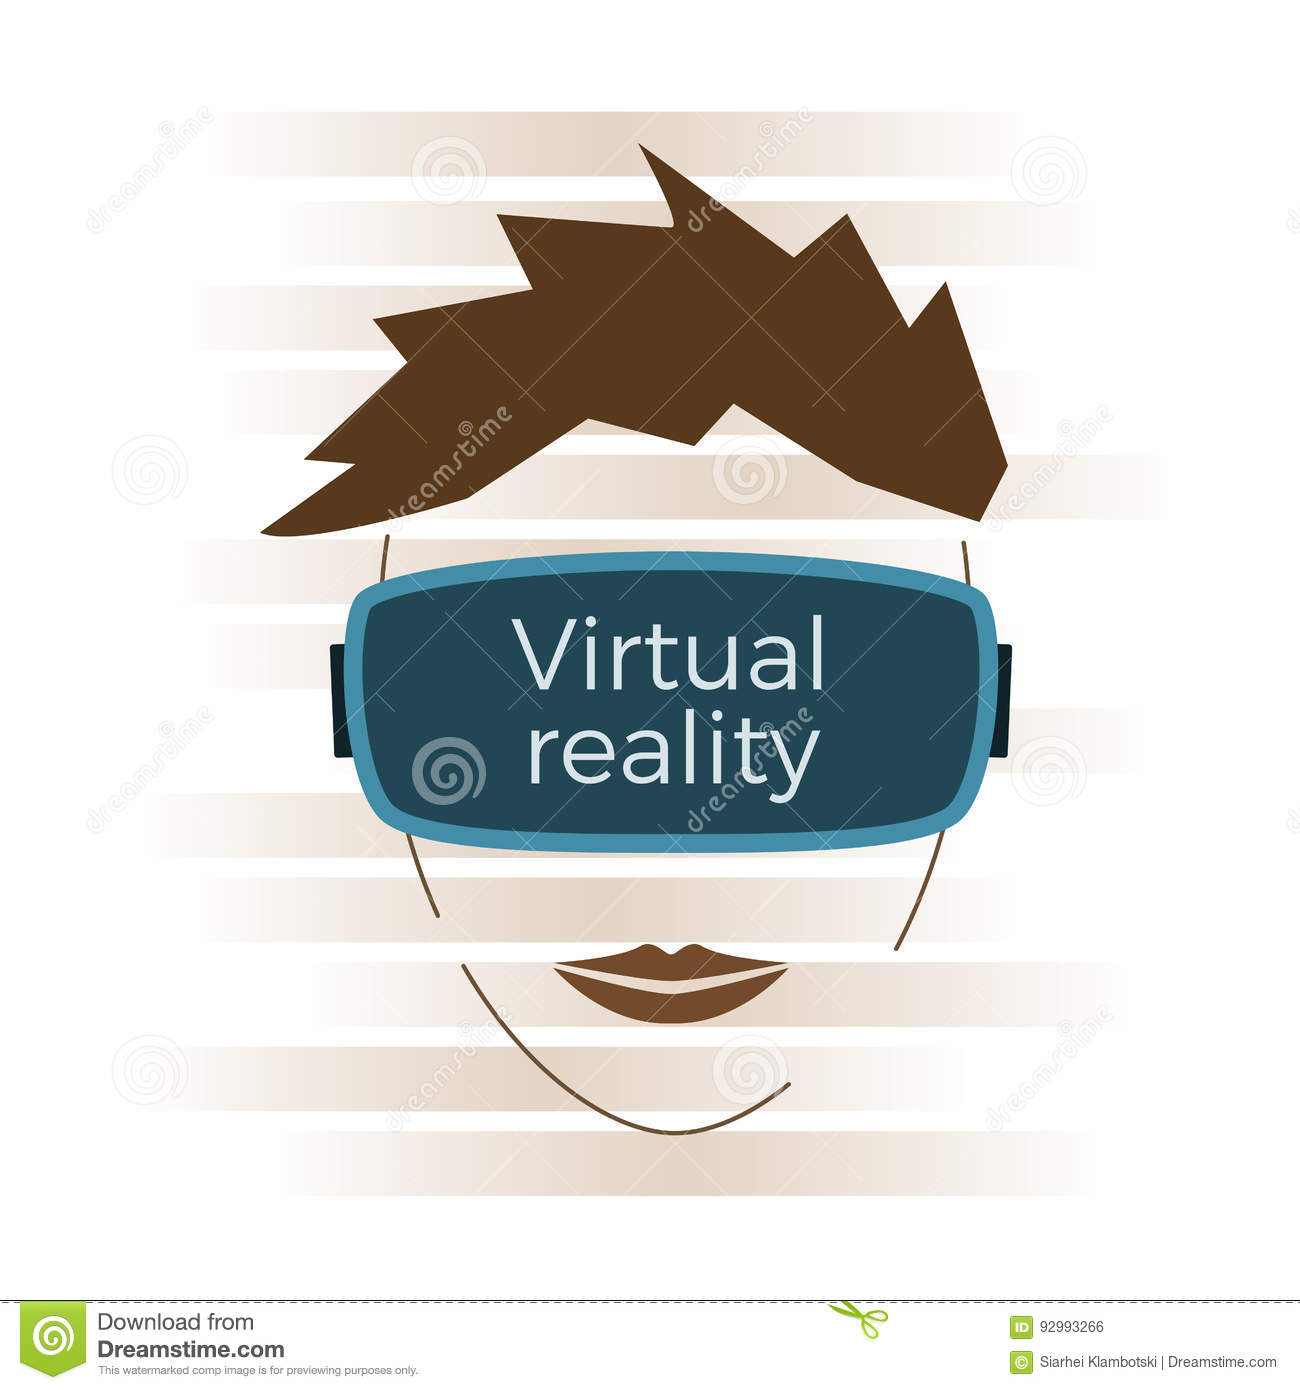 understanding the concept of virtual reality vr In the future, full immersion virtual reality will serve us experiences no different from our real world we take a look at current & future vr developments.